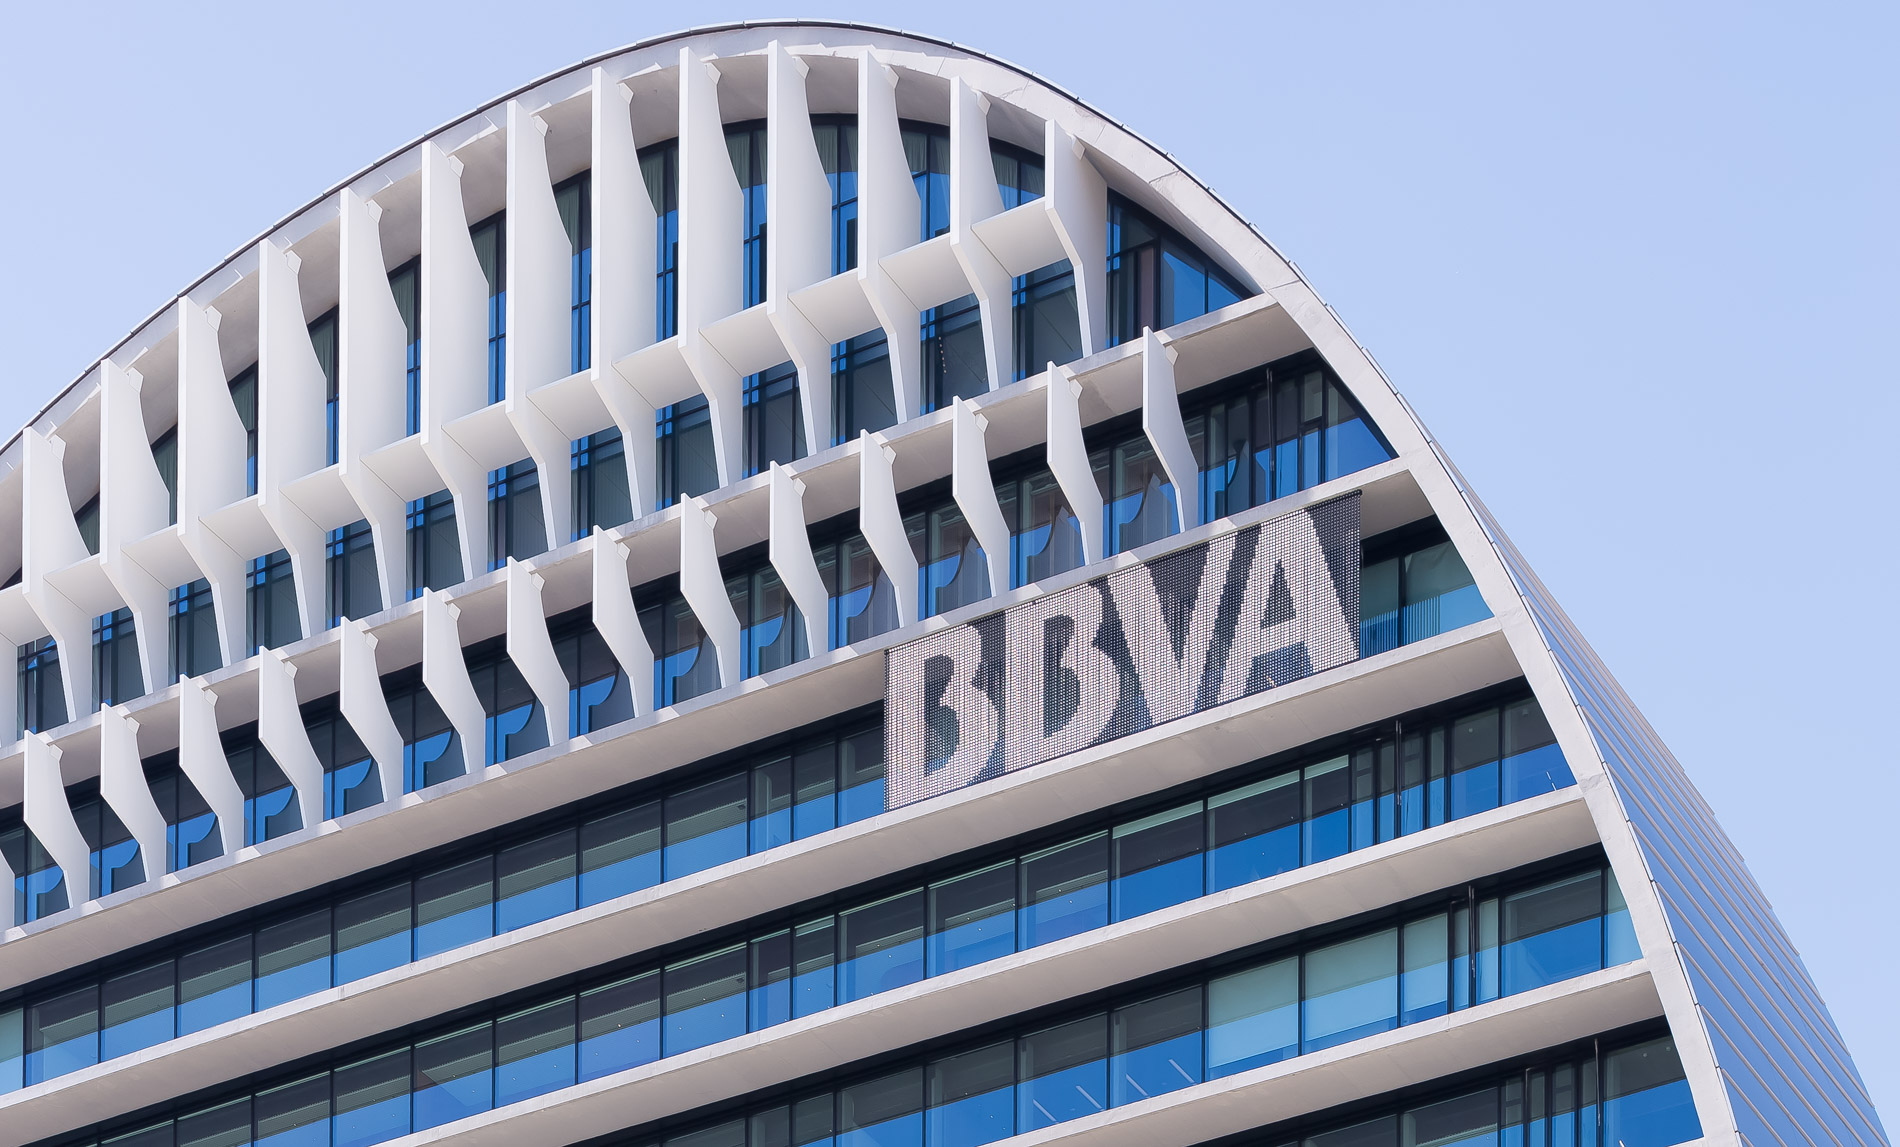 https://accionistaseinversores.bbva.com/wp-content/uploads/2017/03/BBVA-HEADQUARTERS-MADRID-044.jpg